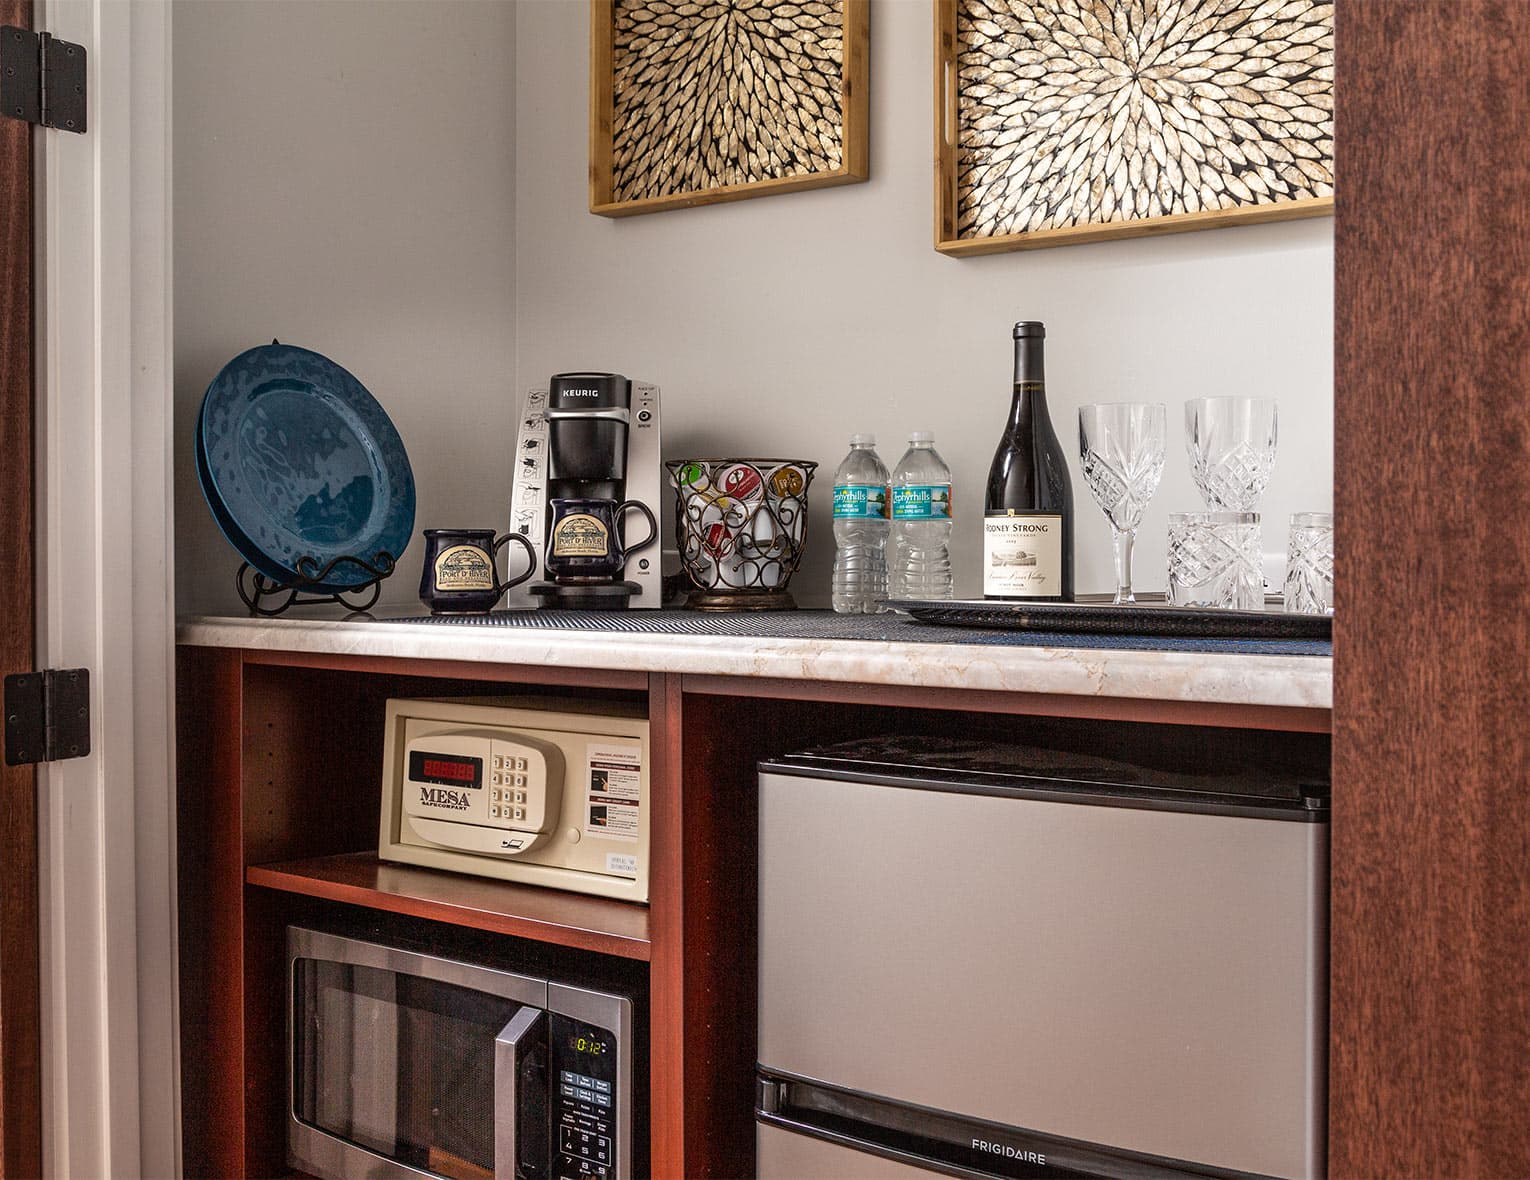 Melbourne Beach Hotel Guest Pantry